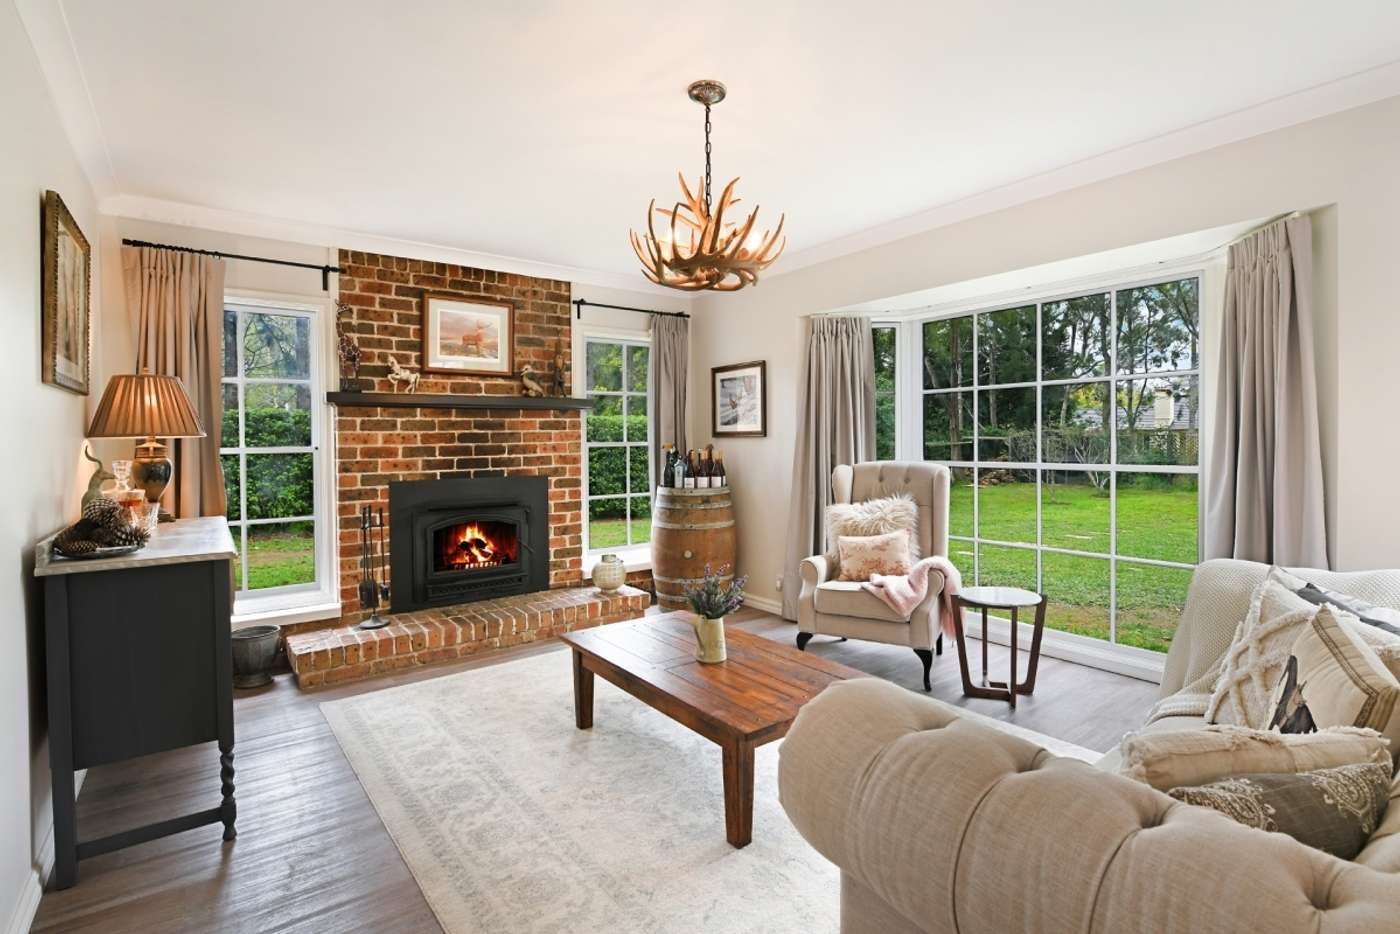 Fifth view of Homely house listing, 39 Sunninghill Avenue, Burradoo NSW 2576